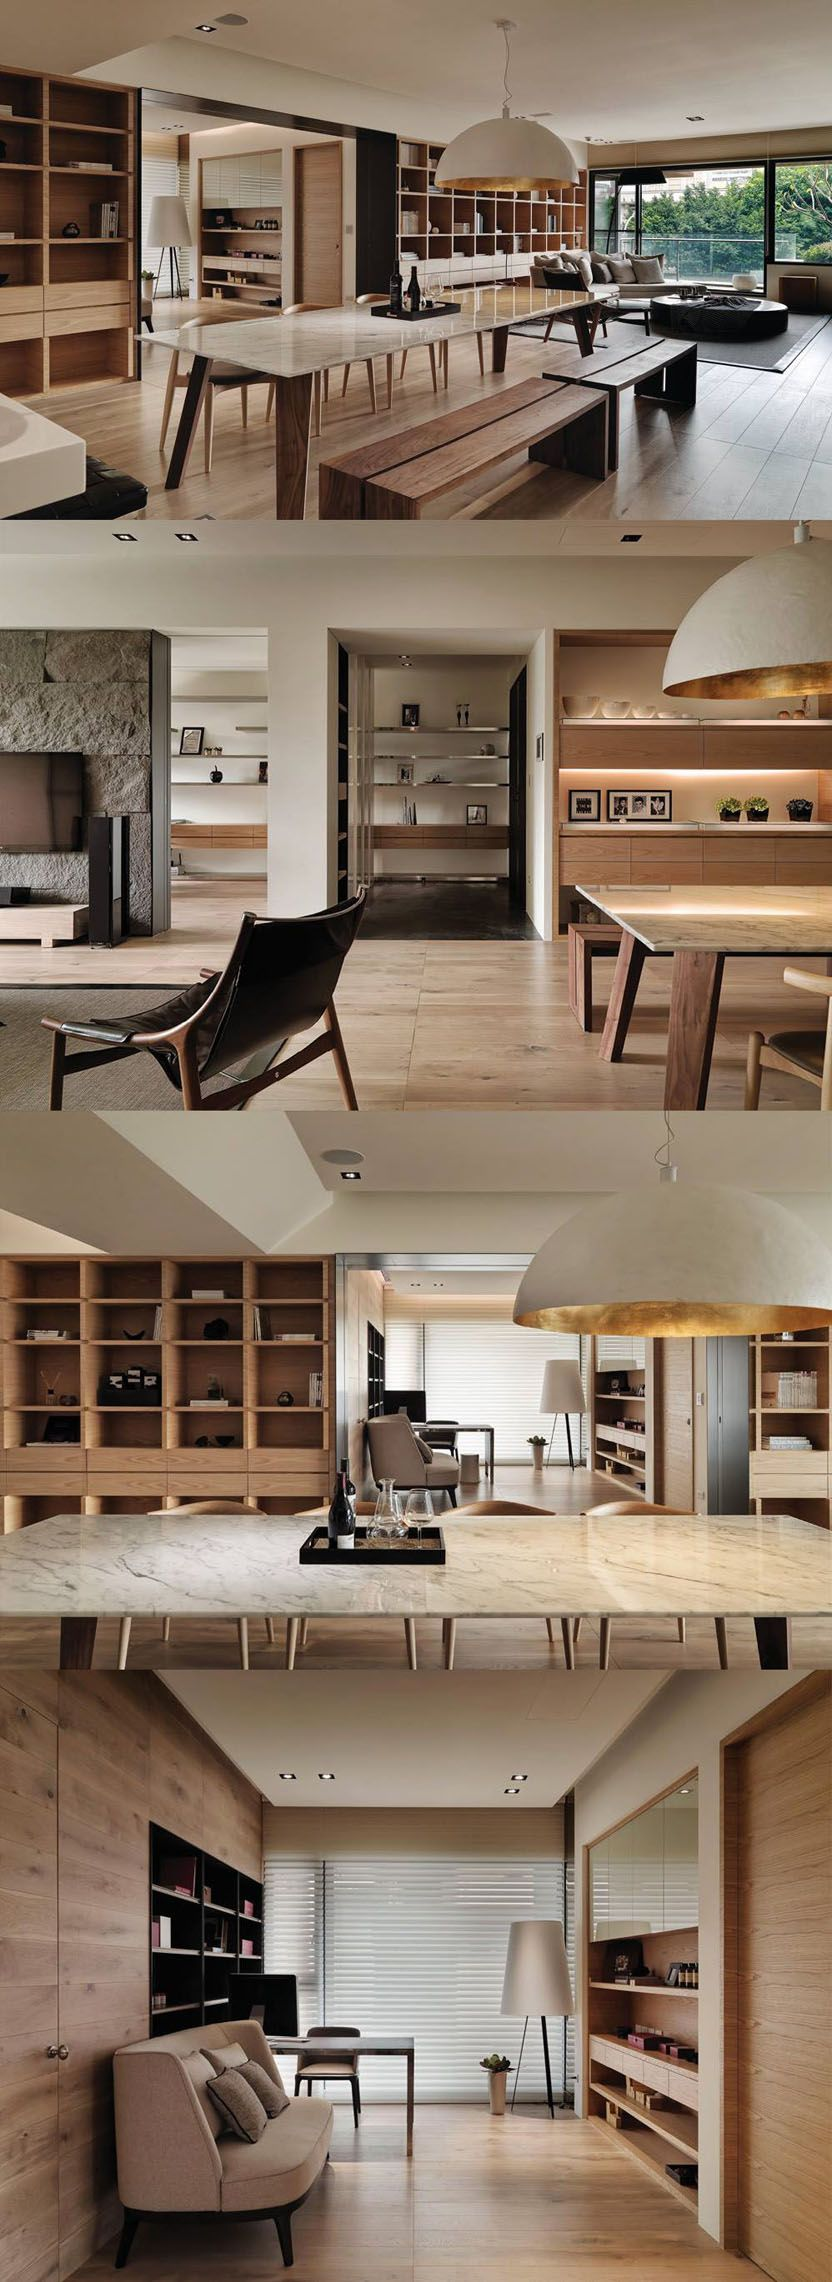 This Is The Best Natural Wood Stone Wood Interior Design Home Interior Design Apartment Design